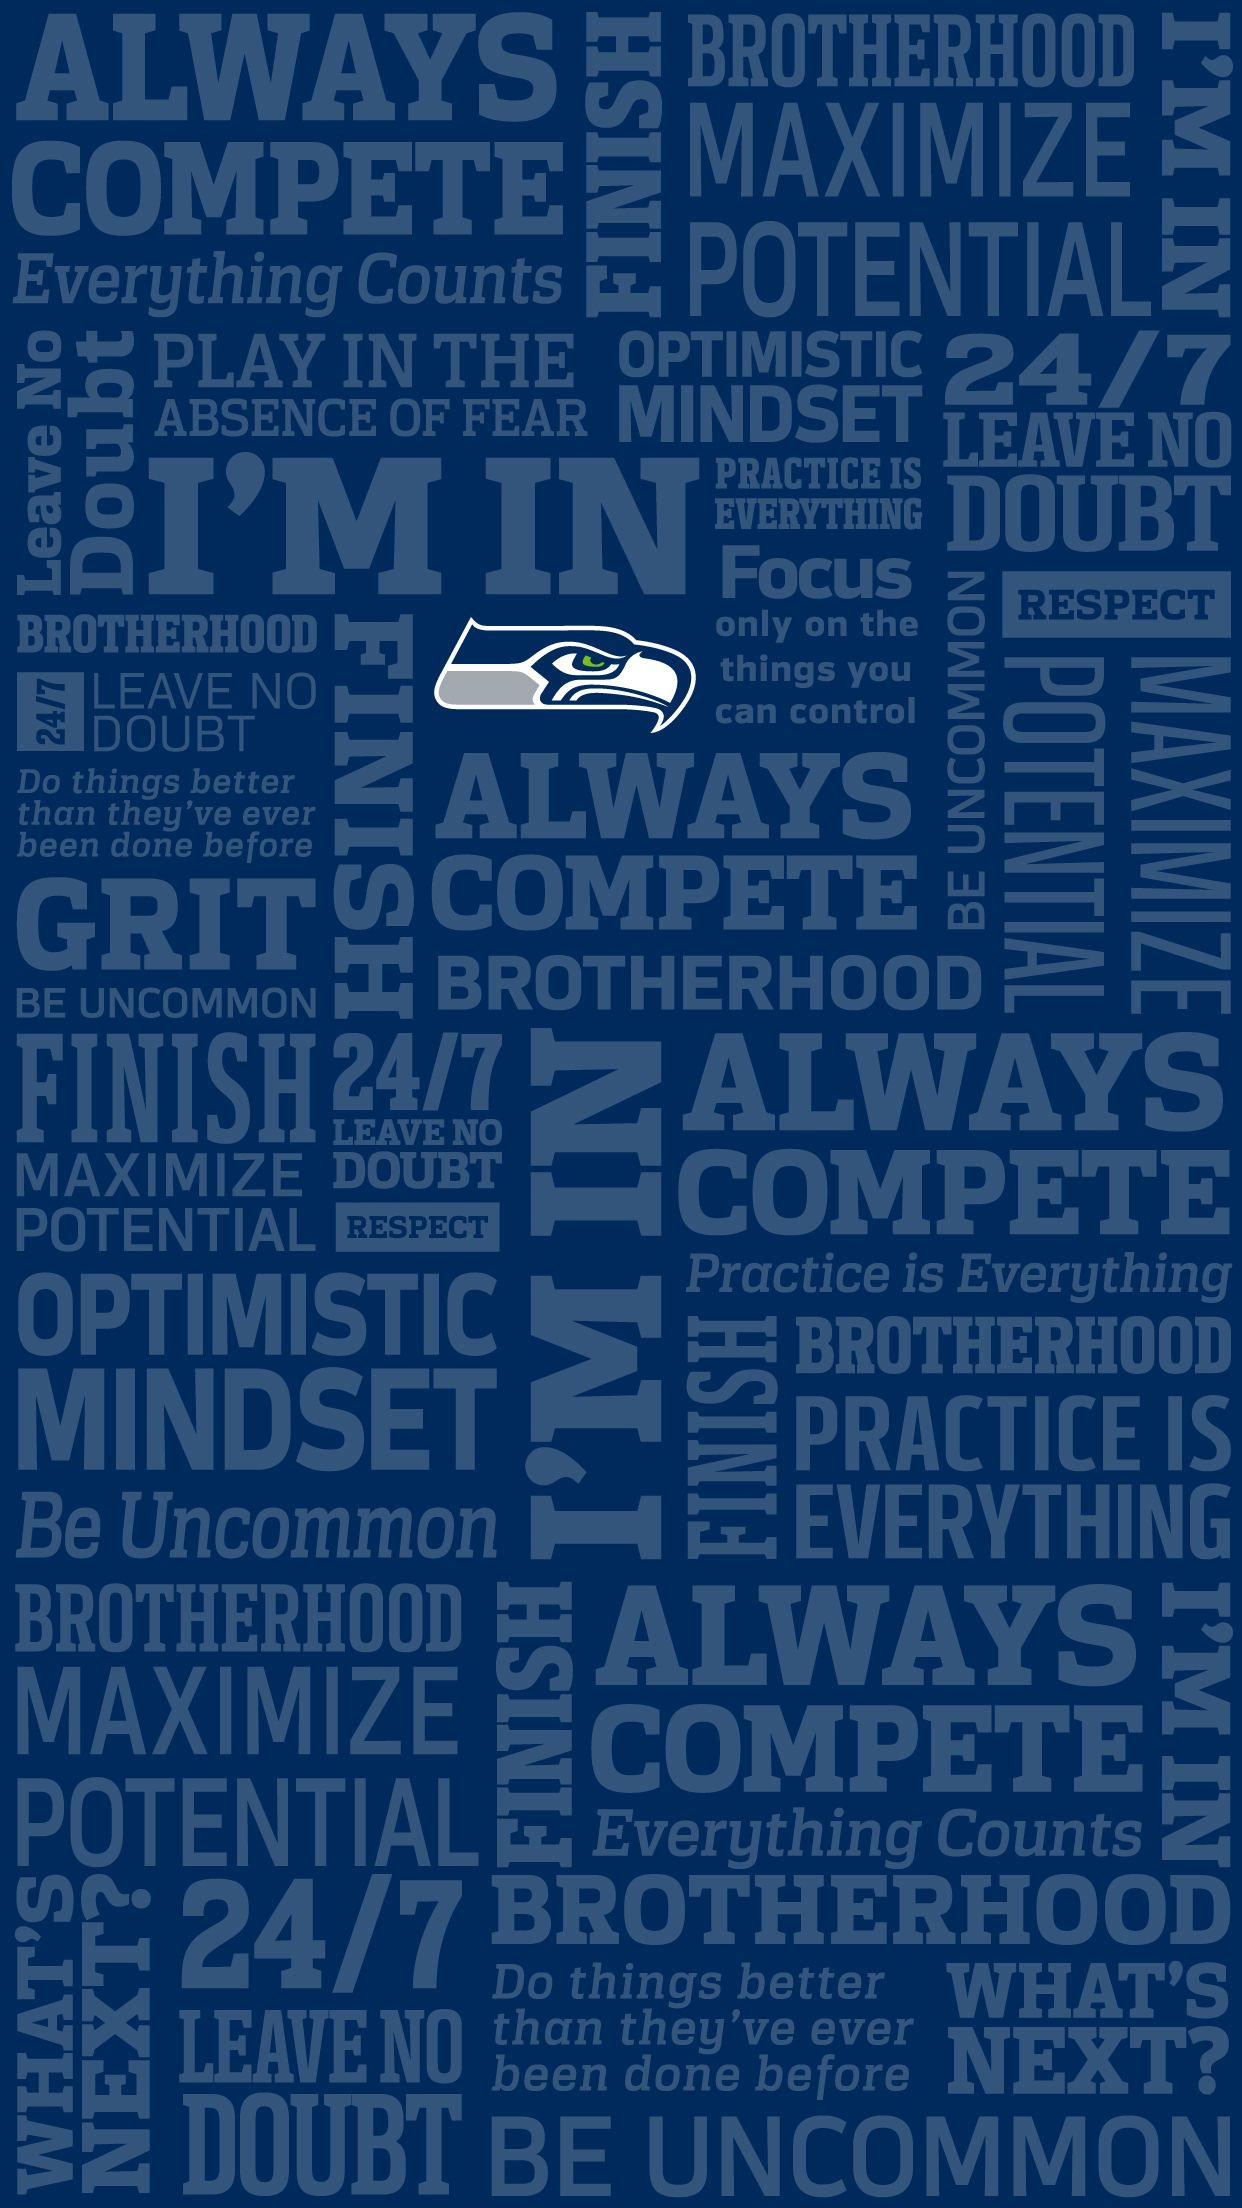 Hd wallpaper for android 5 5 inch - Seahawks Wallpapers Seattle Seahawks